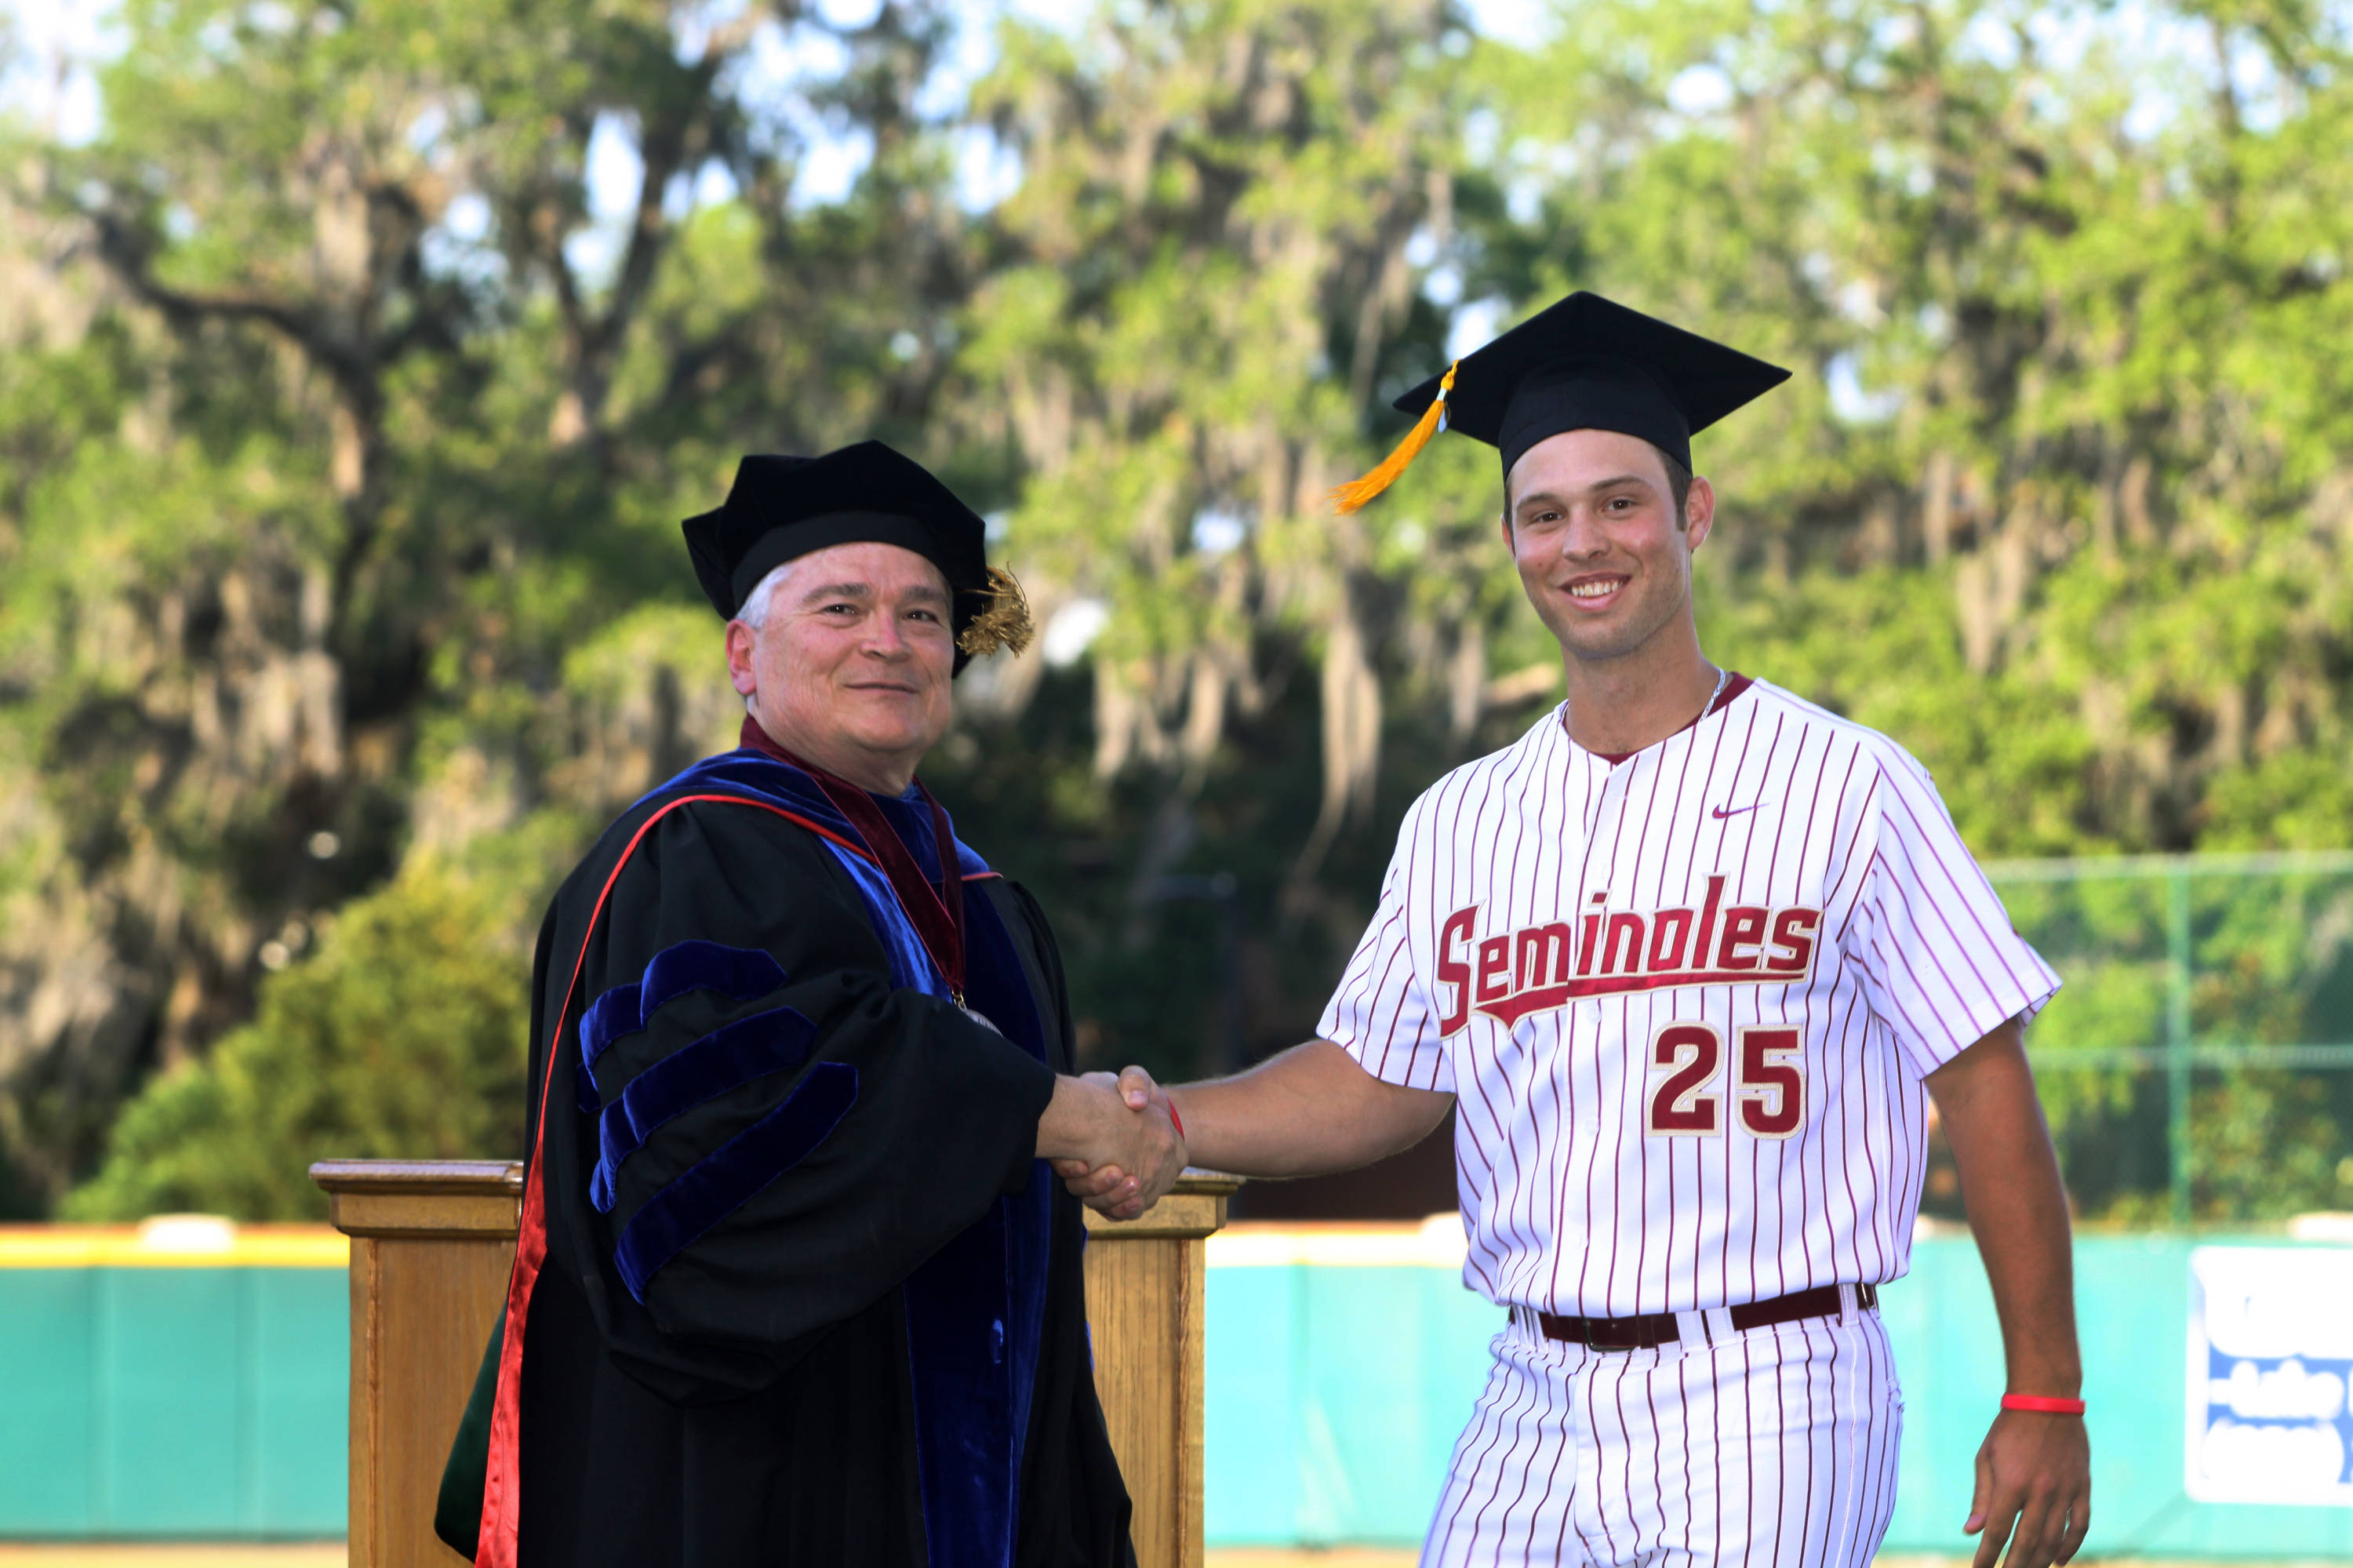 2011 Spring Graduation Ceremony held at Dick Howser Stadium to honor the graduating baseball seniors. Mike McGee (25) with President Barron